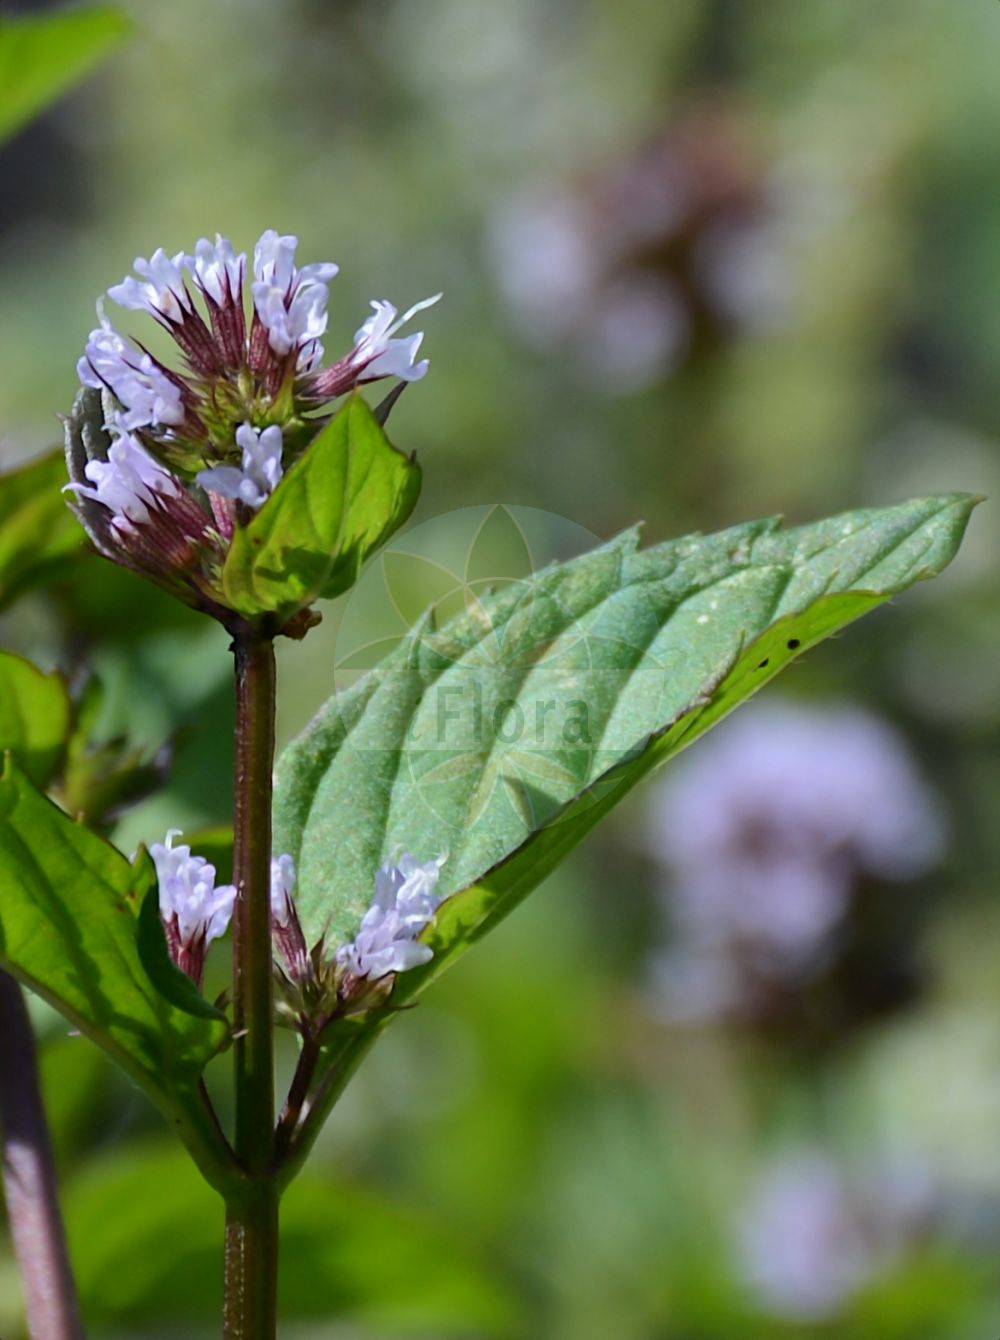 Foto von Mentha piperita (Pfeffer-Minze - Chocolate Mint). Das Bild zeigt Blatt und Bluete. Das Foto wurde in Wuerzburg, Bayern, Deutschland aufgenommen. ---- Photo of Mentha piperita (Pfeffer-Minze - Chocolate Mint).The image is showing leaf and flower.The picture was taken in Wuerzburg, Bayern, Germany.(Mentha piperita,Pfeffer-Minze,Chocolate Mint,Mentha,Minze,Mint,Lamiaceae,Lippenbluetengewaechse;Lippenbluetler,Nettle family,Blatt,Bluete,leaf,flower)